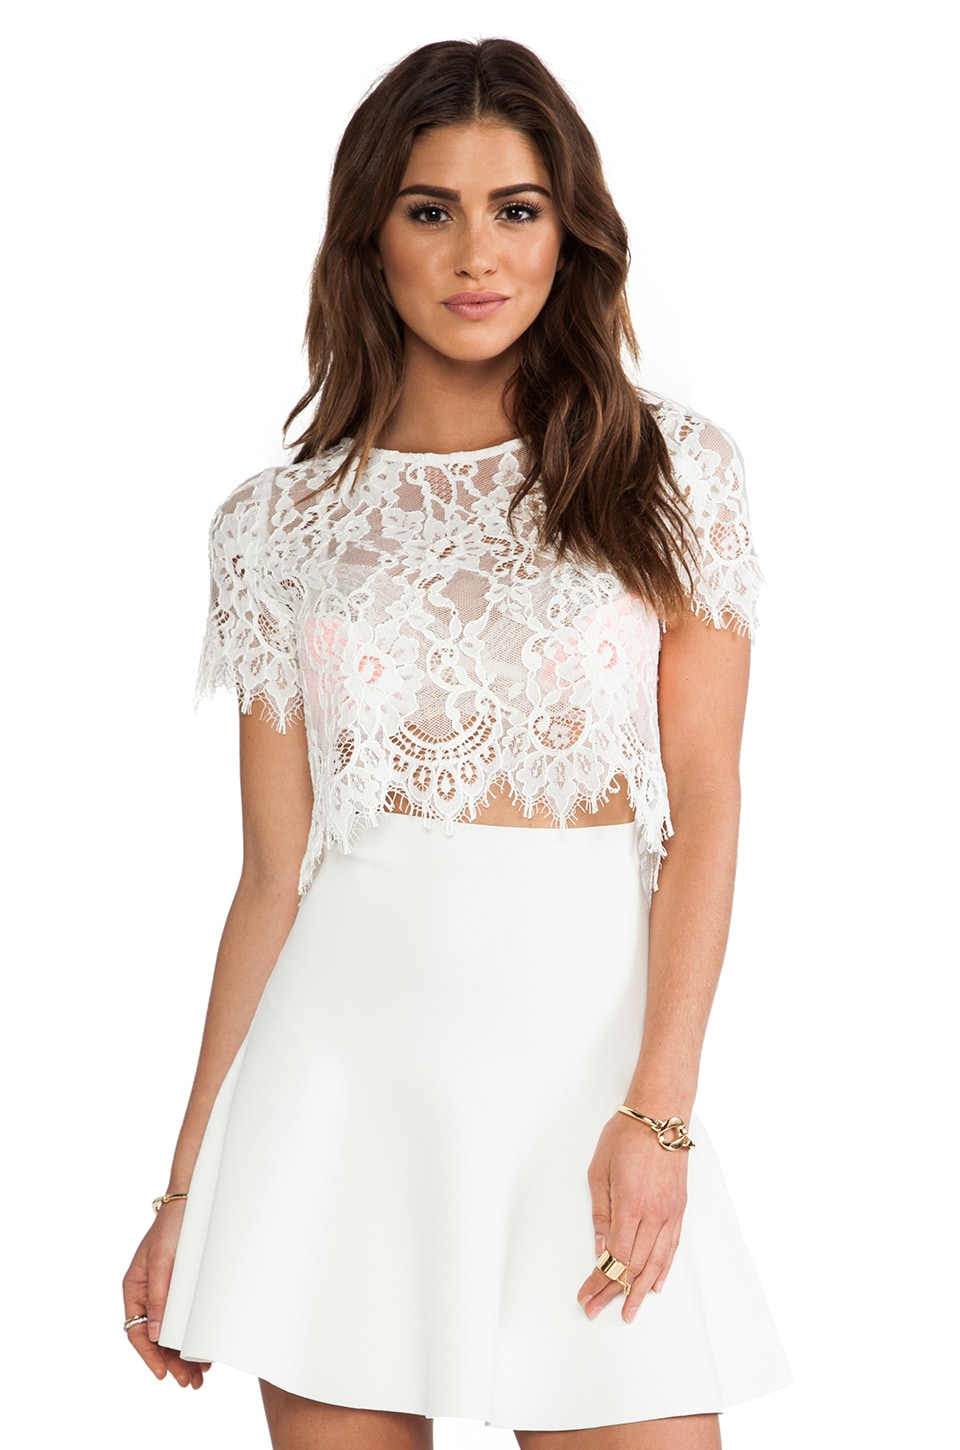 Alexis EXCLUSIVE Lisette Capped Sleeve Lace Crop Top in White